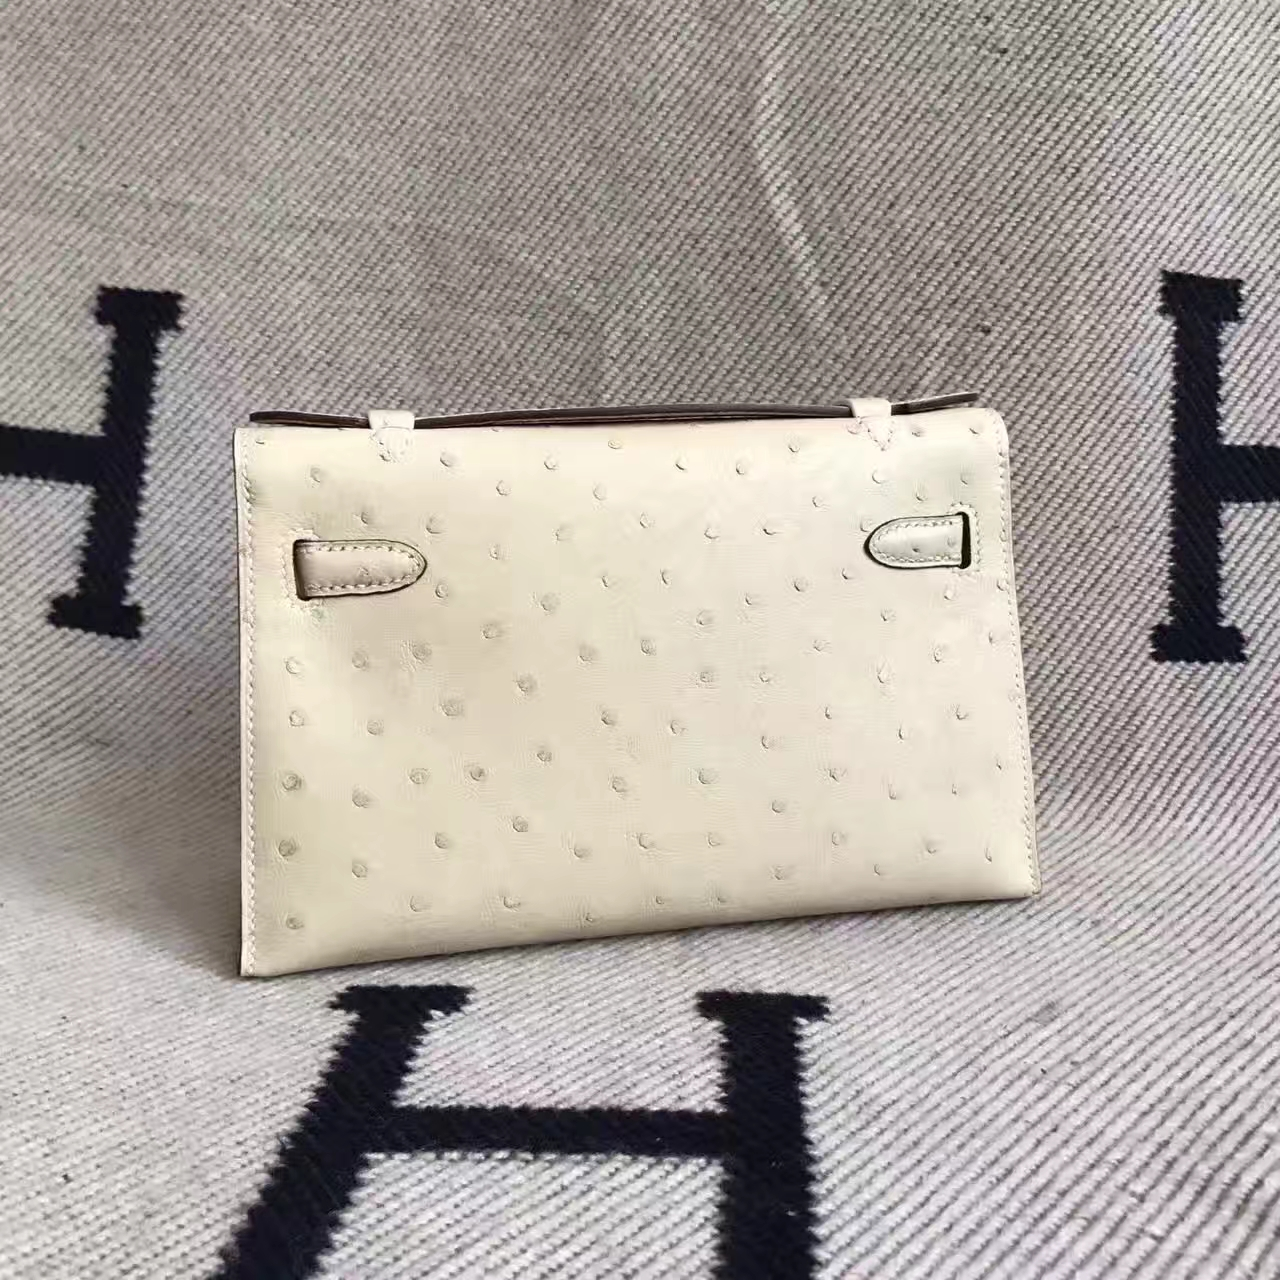 Wholesale Hermes Wool White Ostrich Leather Minikelly Clutch Bag 22cm